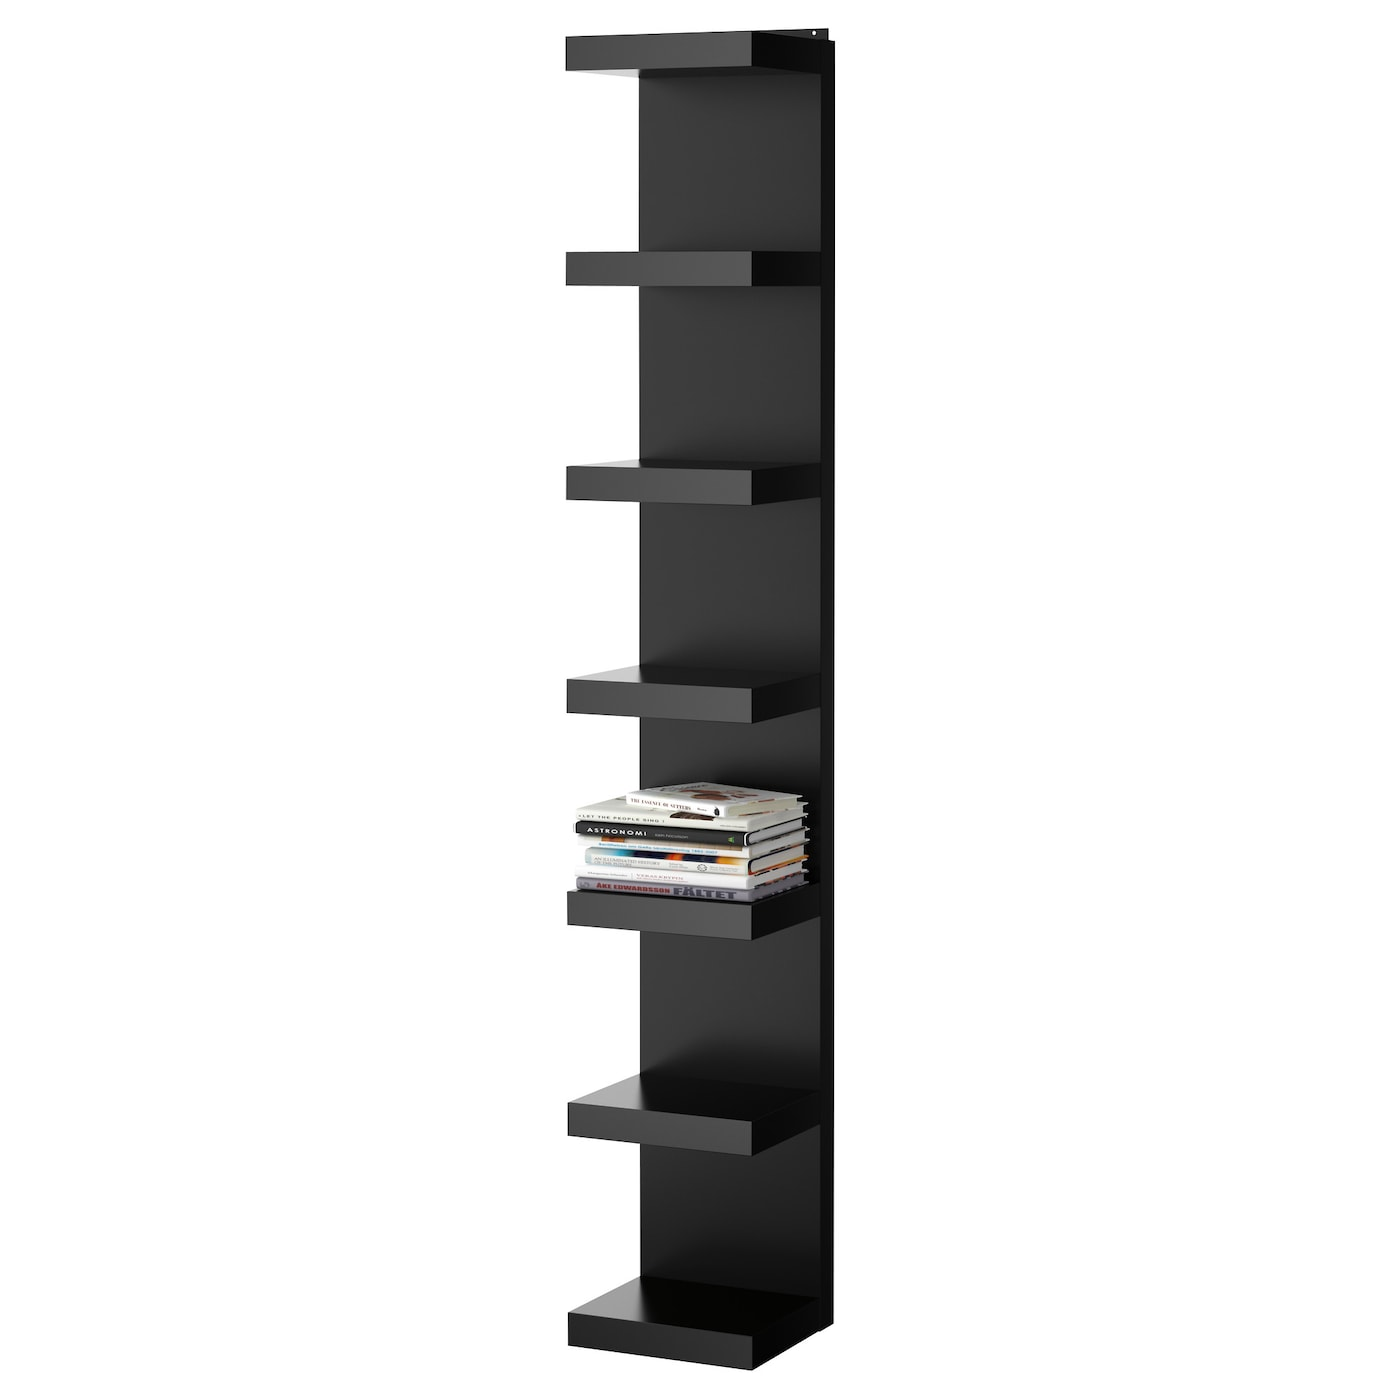 Lack wall shelf unit black 30 x 190 cm ikea - Ikea libreria lack ...